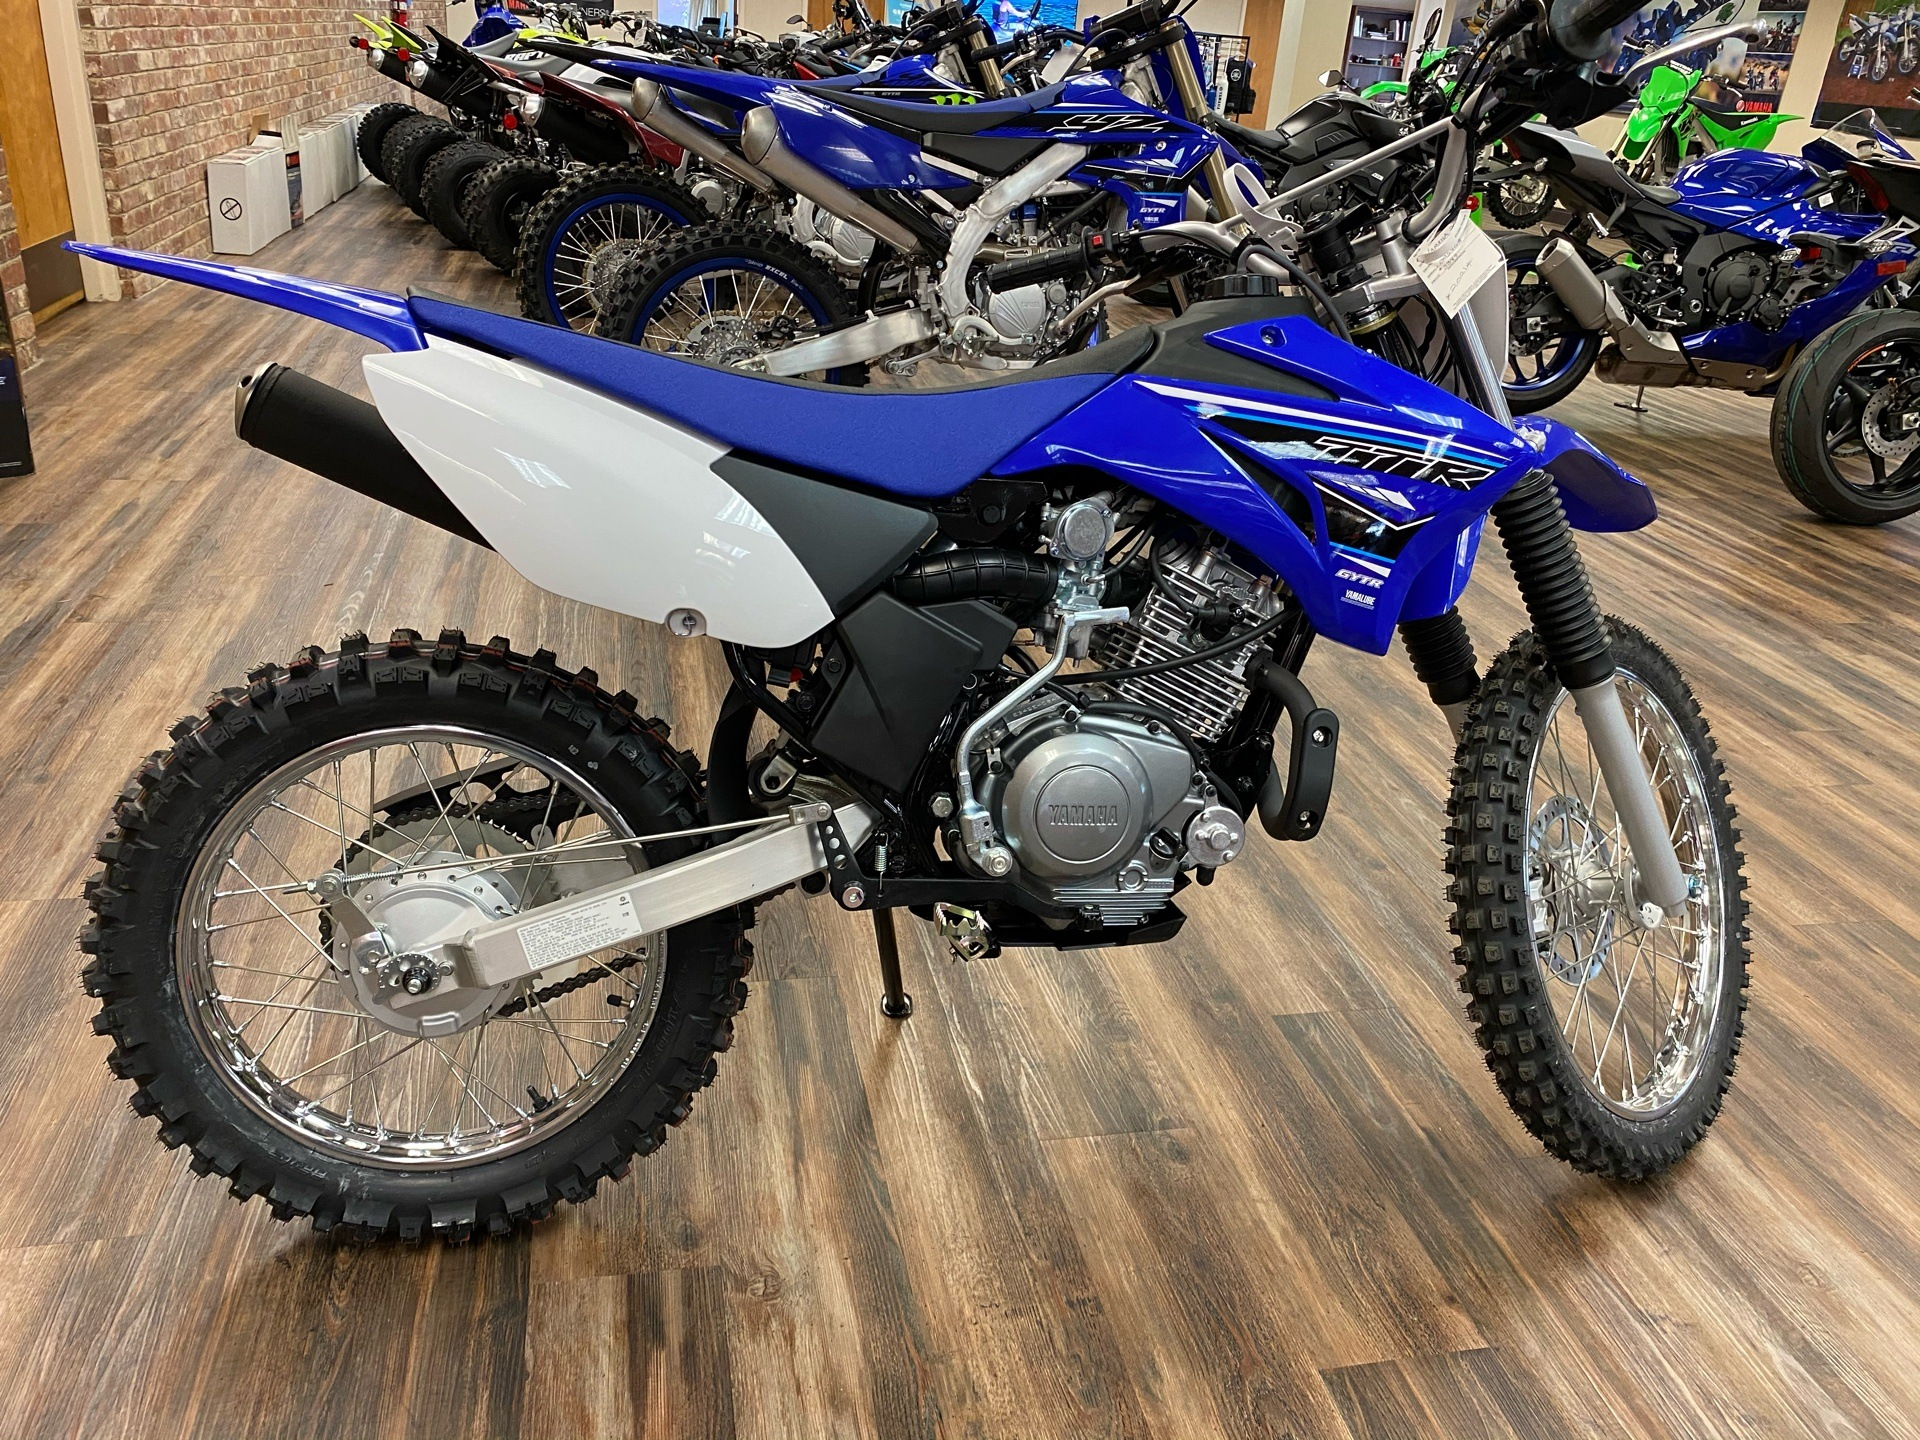 2021 Yamaha TT-R125LE in Statesville, North Carolina - Photo 4